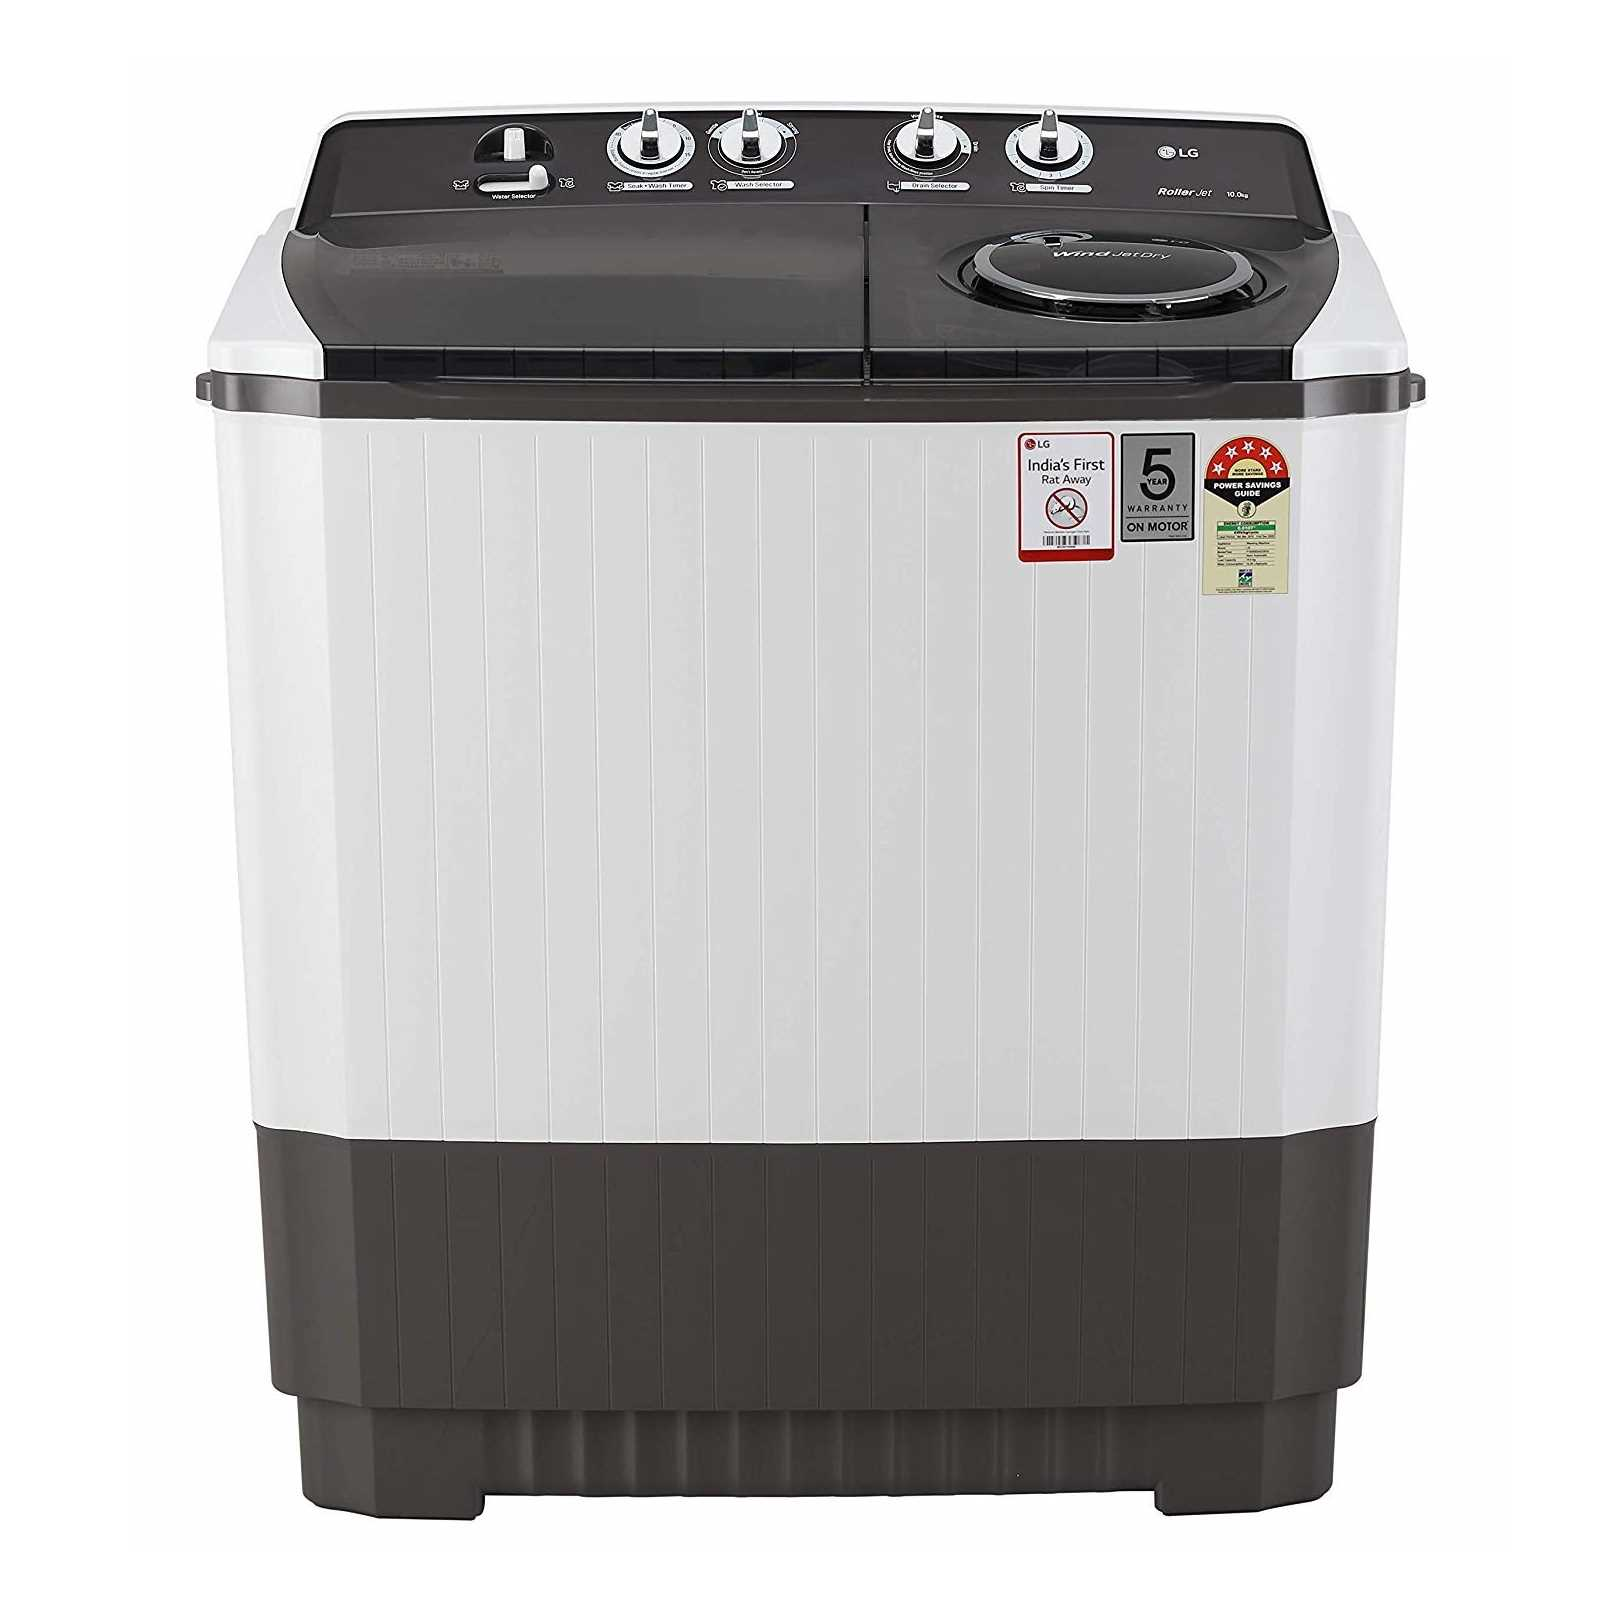 LG P1045SGAZ 10 Kg Semi Automatic Top Loading Washing Machine